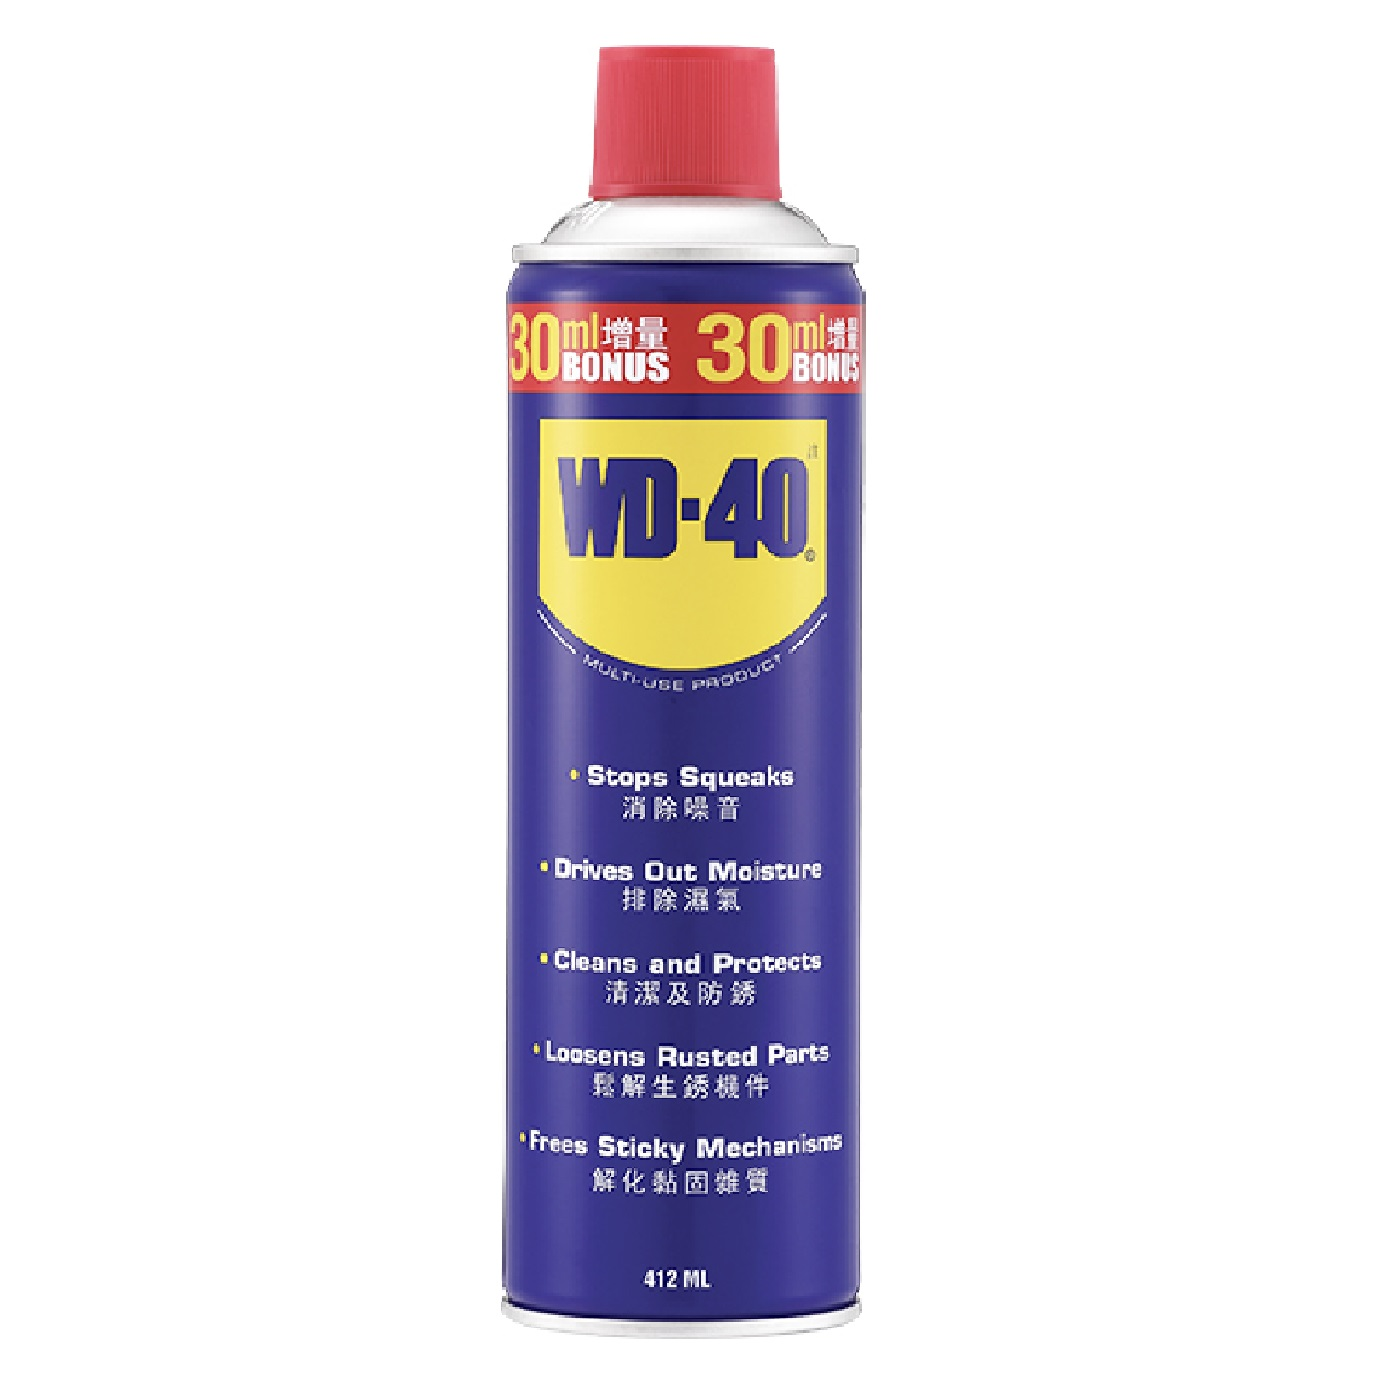 WD40 Multi-Use Product 412ML